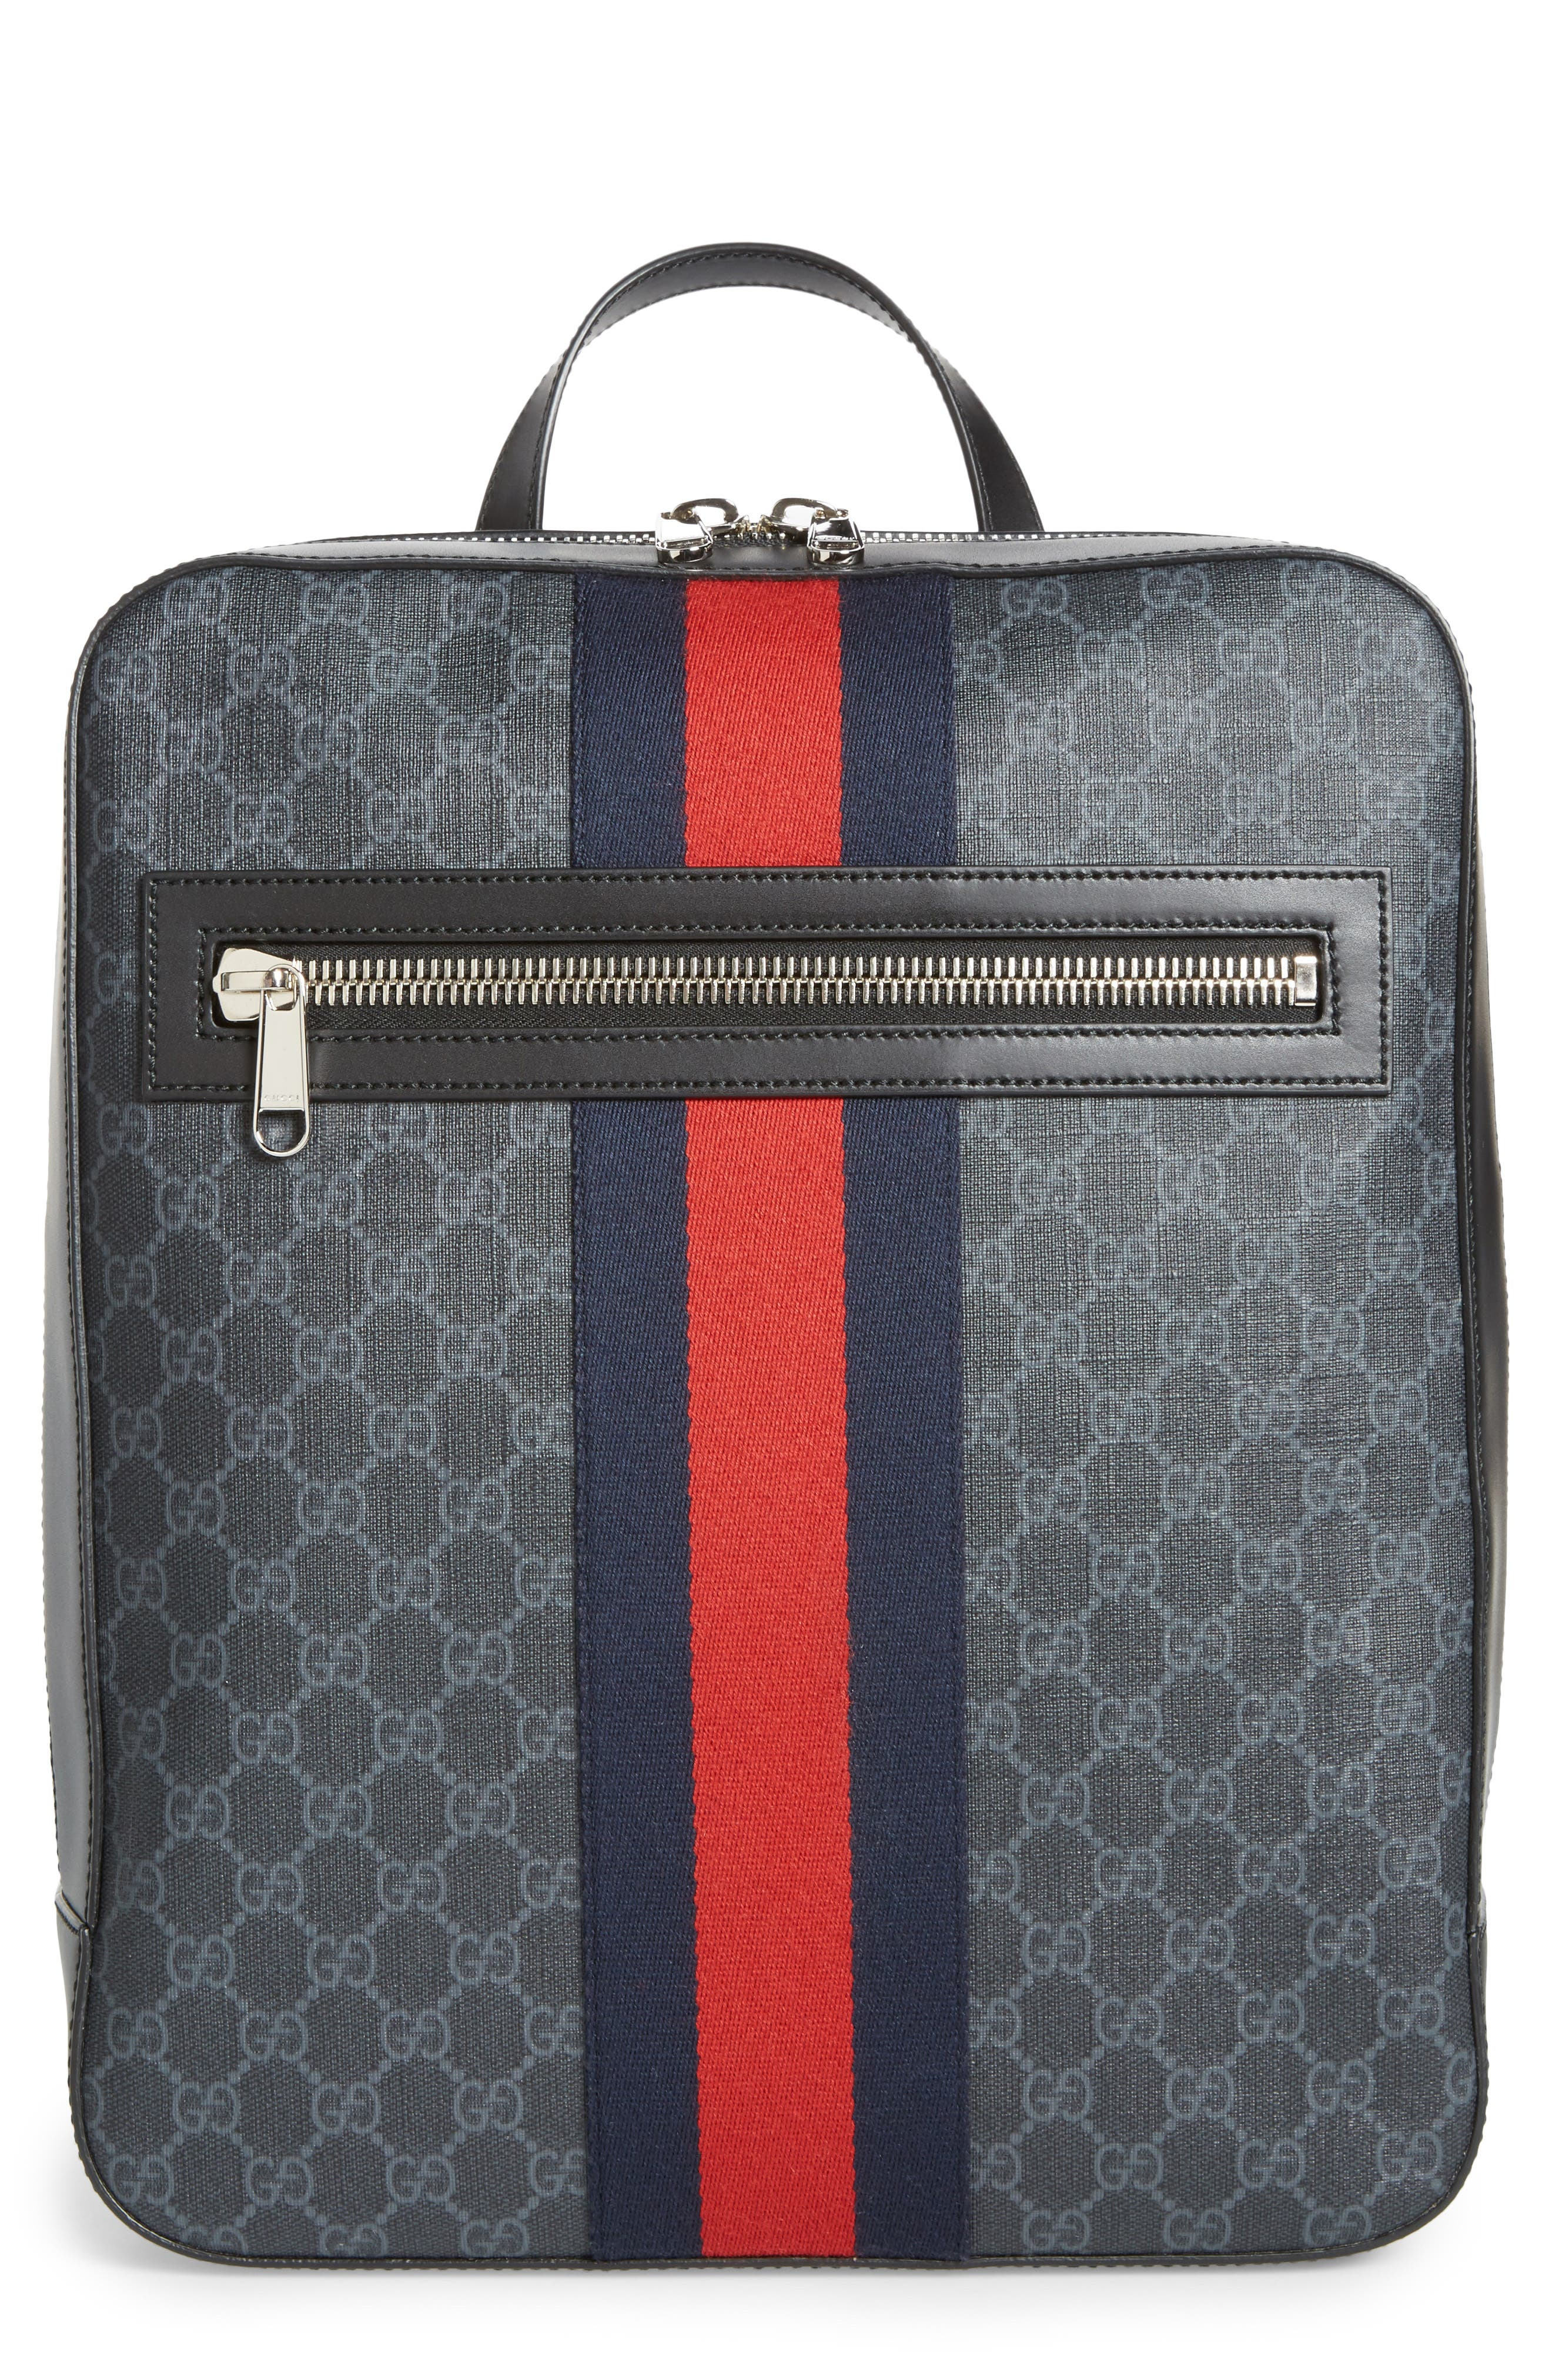 Gucci GG Leather Trim Backpack